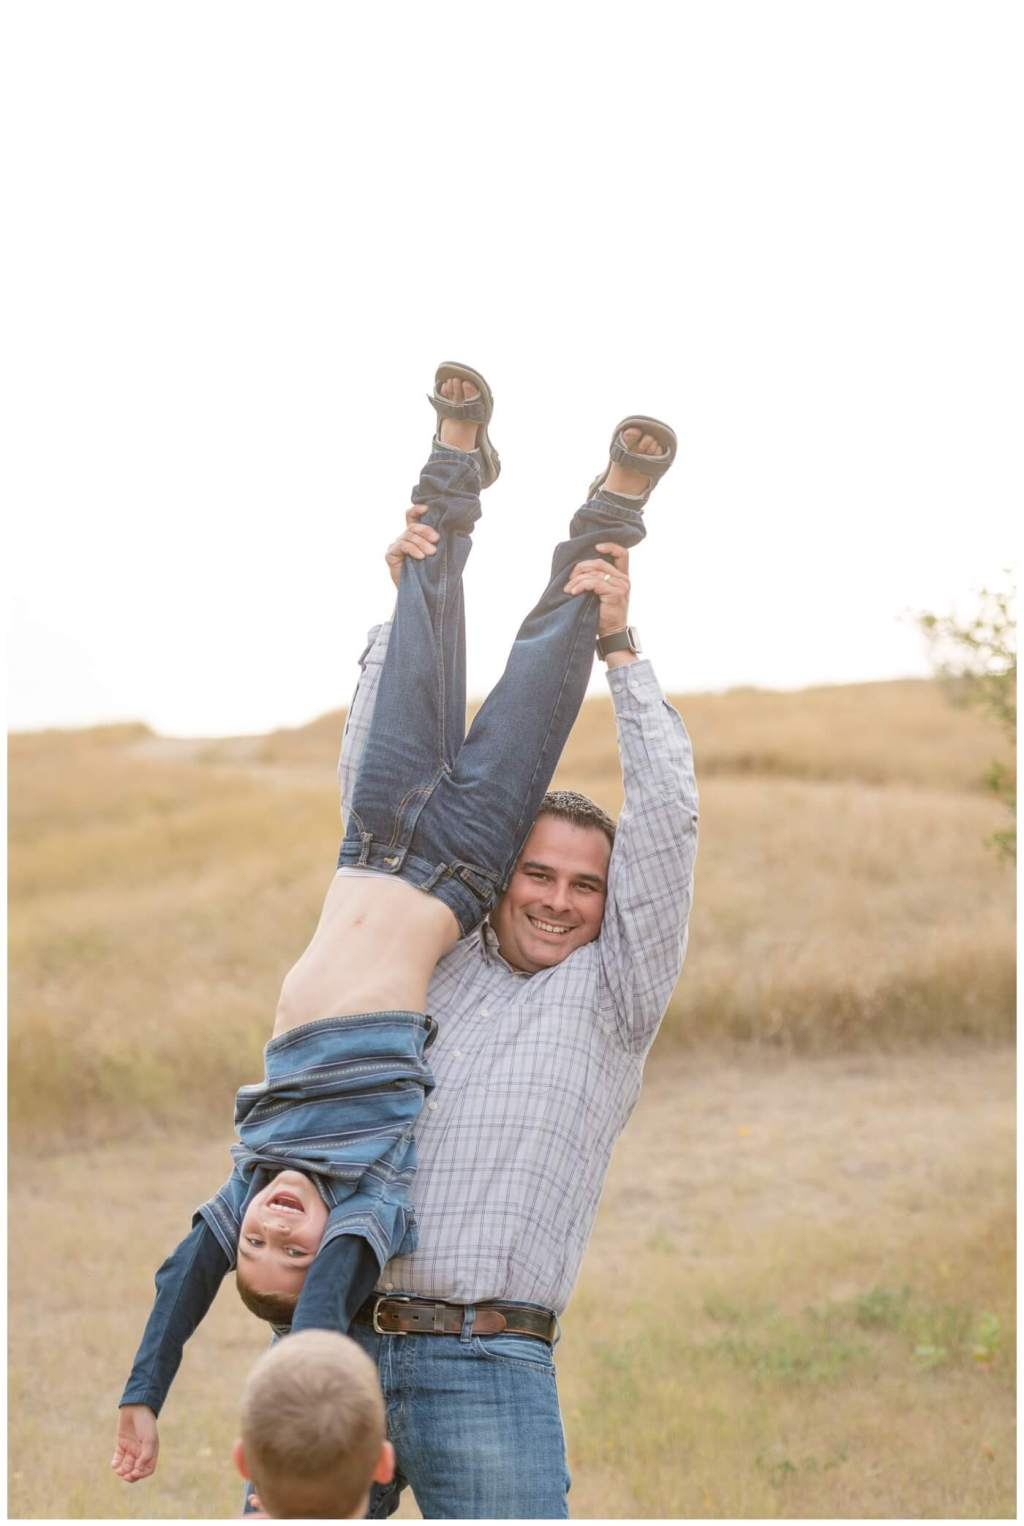 Regina Family Photographers - Favel Family - Kyle-Ty - Wakamow Valley Park - Moose Jaw